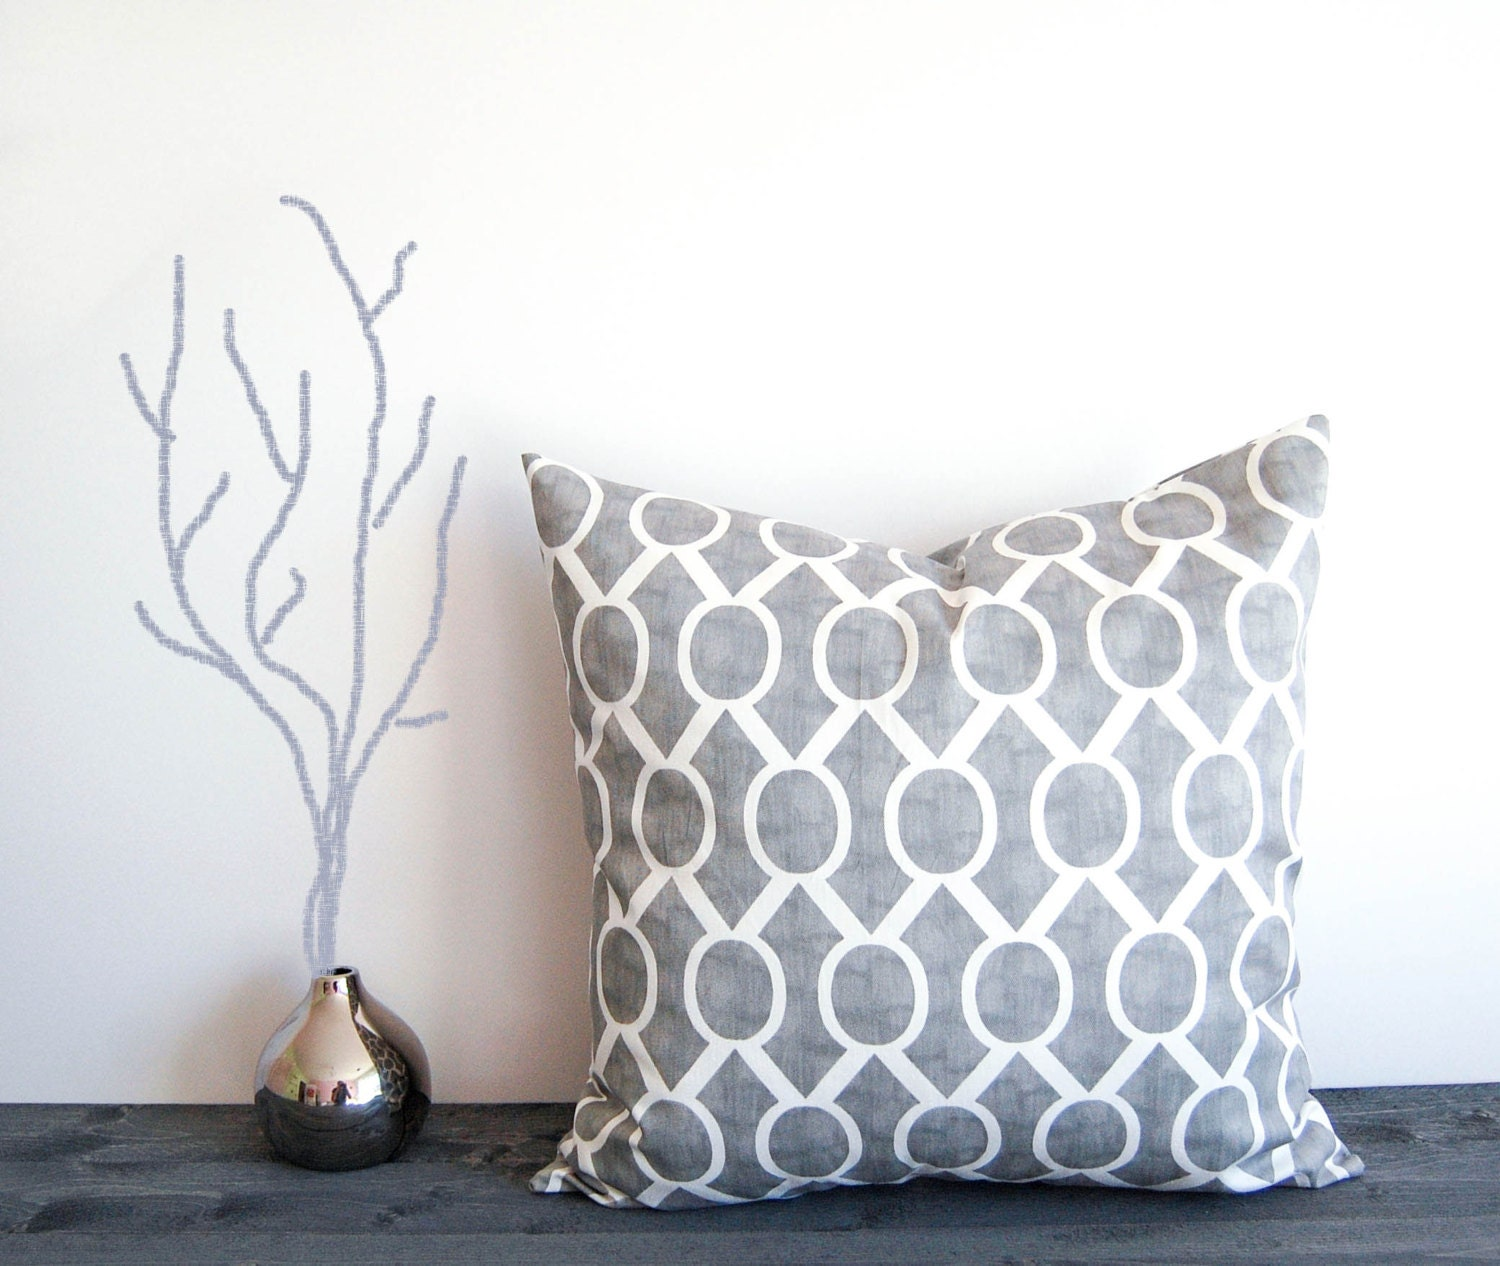 Throw Pillow Covers 20x20 : Gray throw pillow cover 20 x 20 One gray by ThePillowPeople